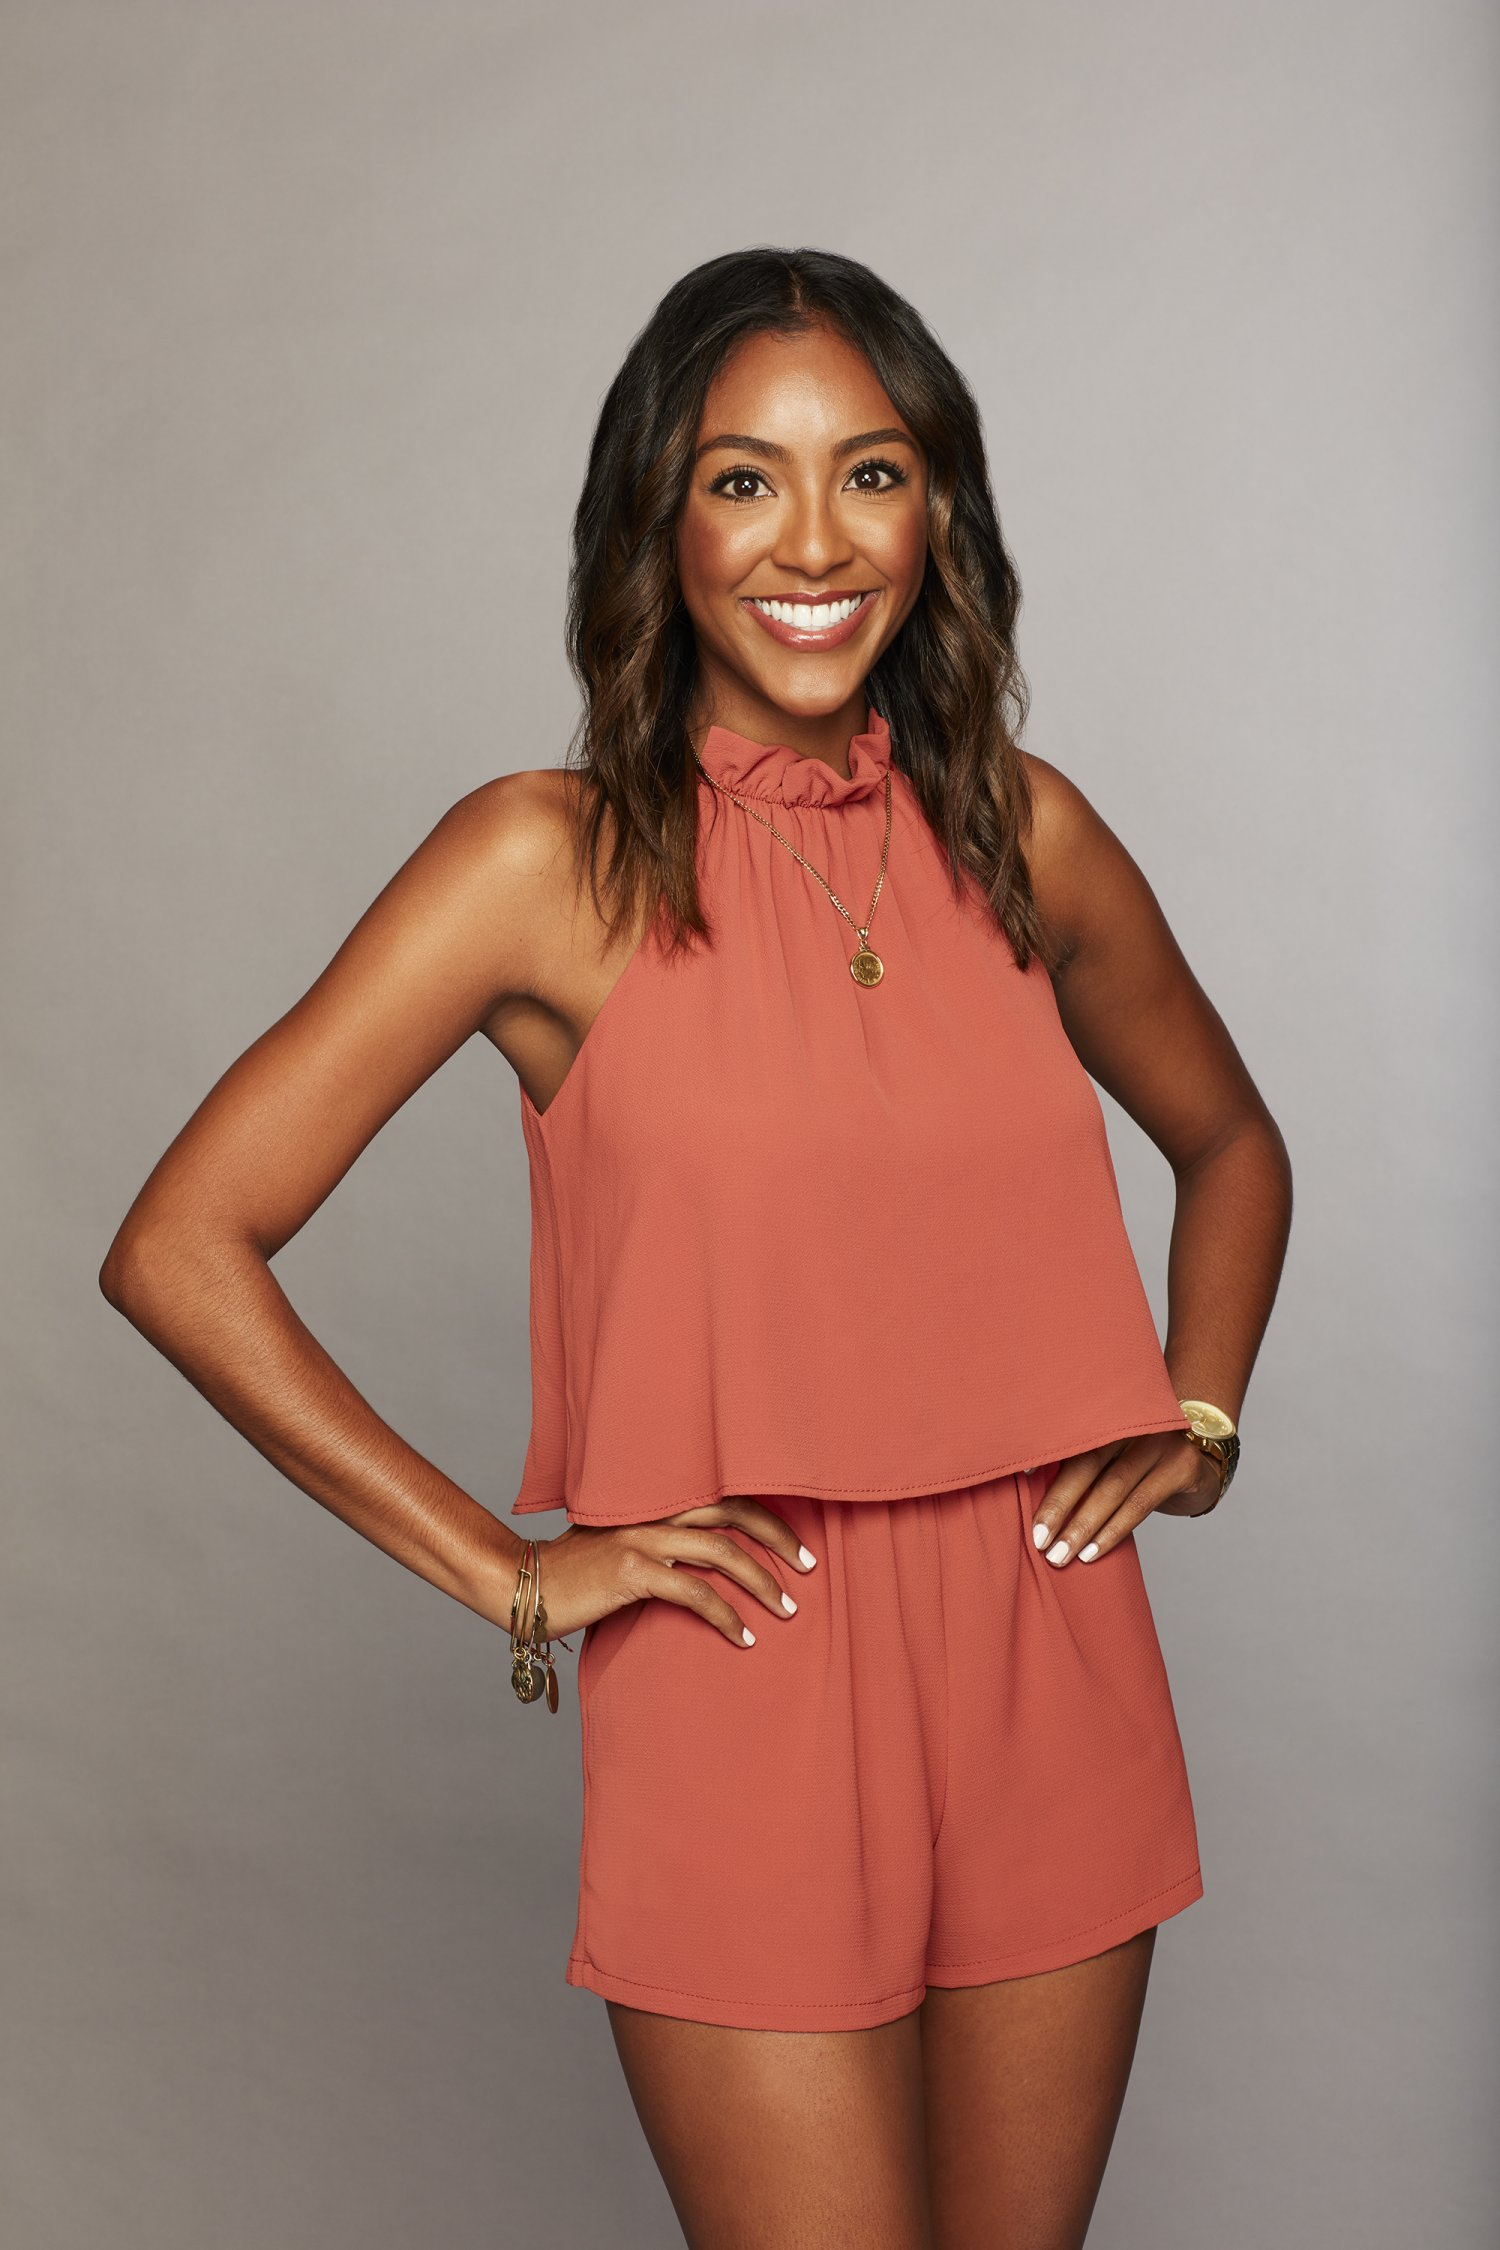 Bachelor 23 - Tayshia Adams - Discussion - *Sleuthing Spoilers* - Page 8 4836-o